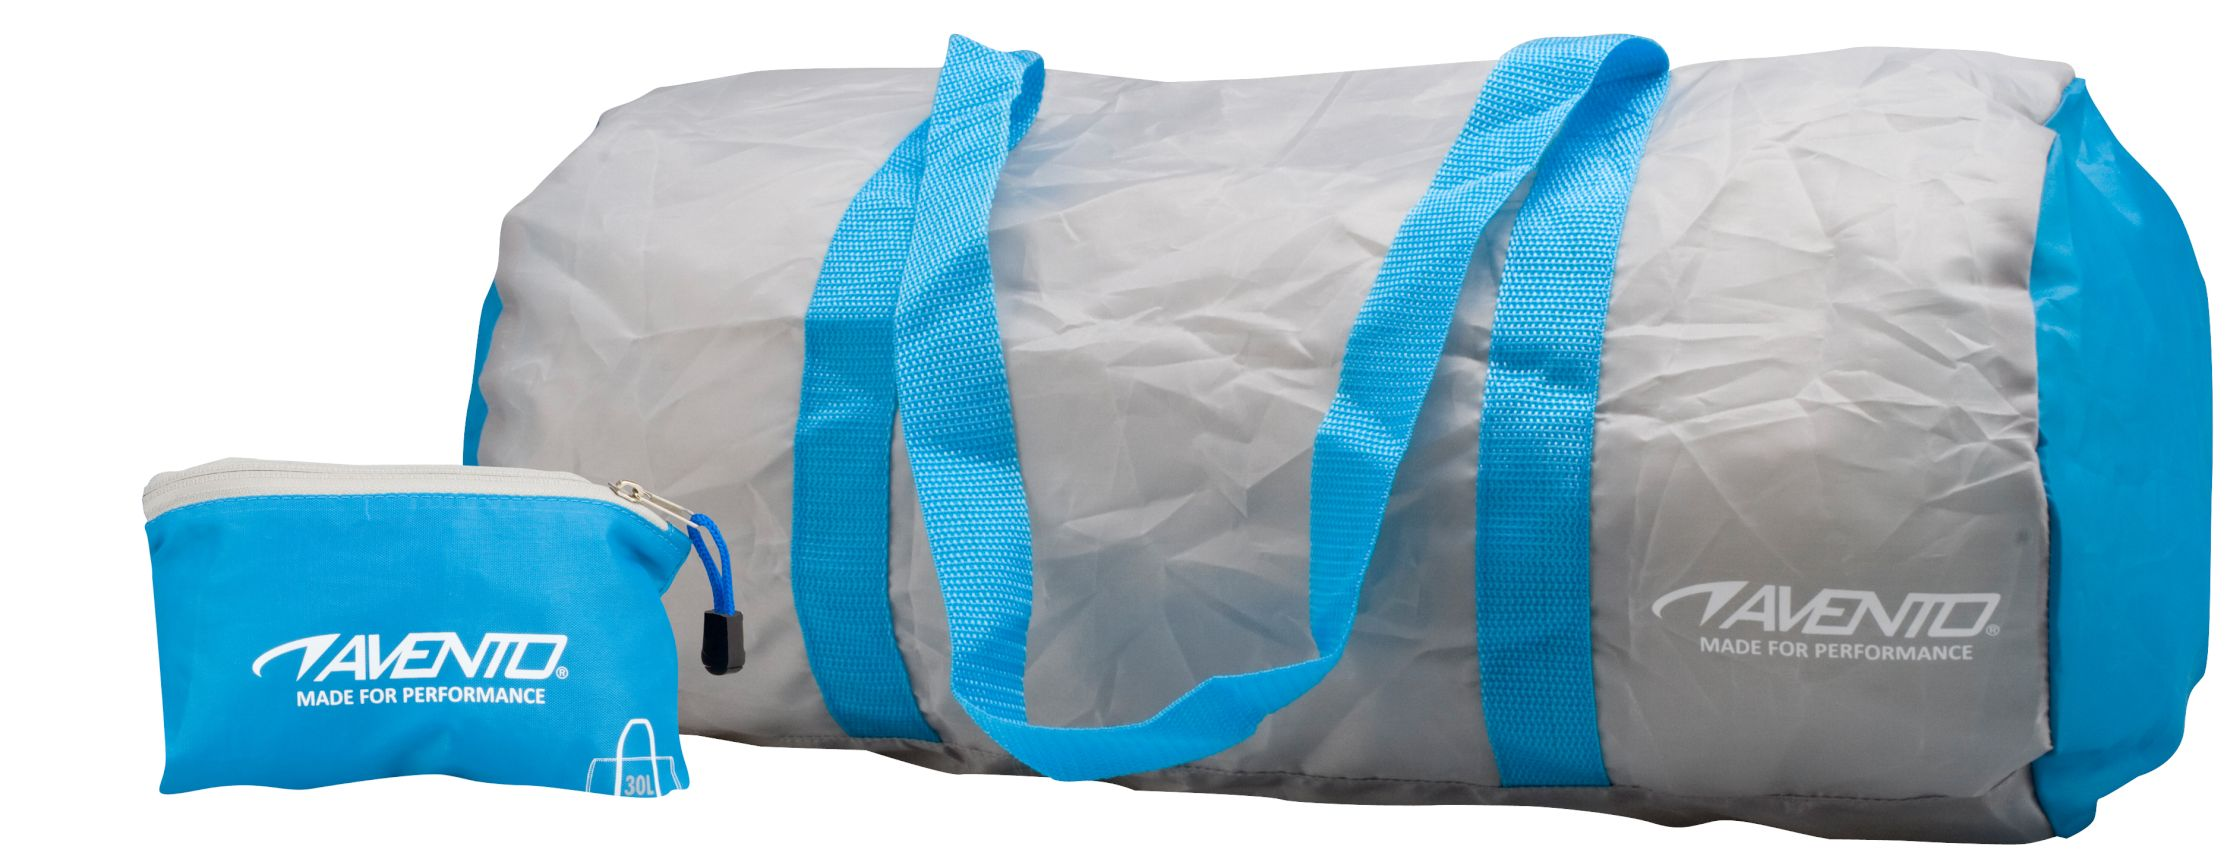 Avento Bag in a sac sporttáska